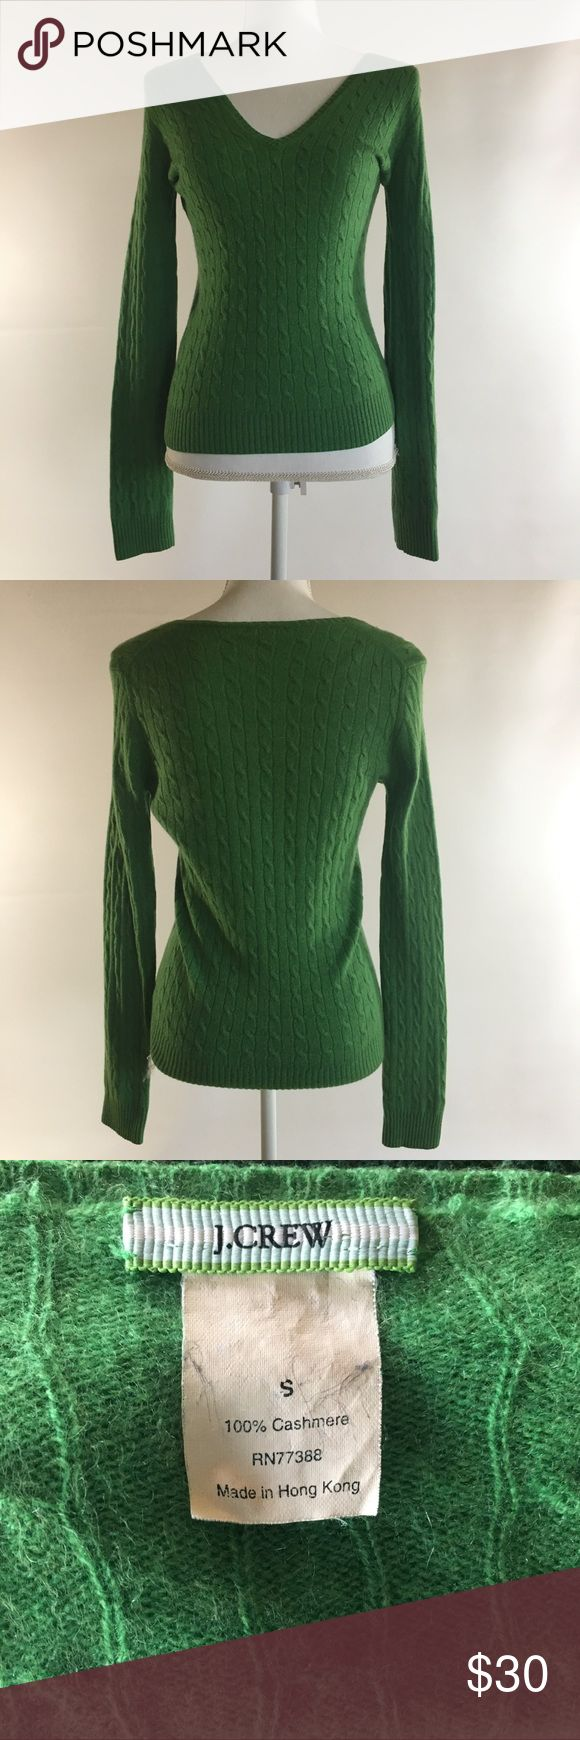 "J. Crew Women's S green Cashmere Sweater Description J. Crew Womens Small Green Cable knit V-Neck sweater 100% cashmere overall in good condition- no stains. There is a very small repair next to the inside arm seam about 1/2 way down- see closeup, it is not noticeable. Measurements: 24.5"" in length from top of shoulder to  bottom hem 19"" across flat front of chest J. Crew Sweaters V-Necks"